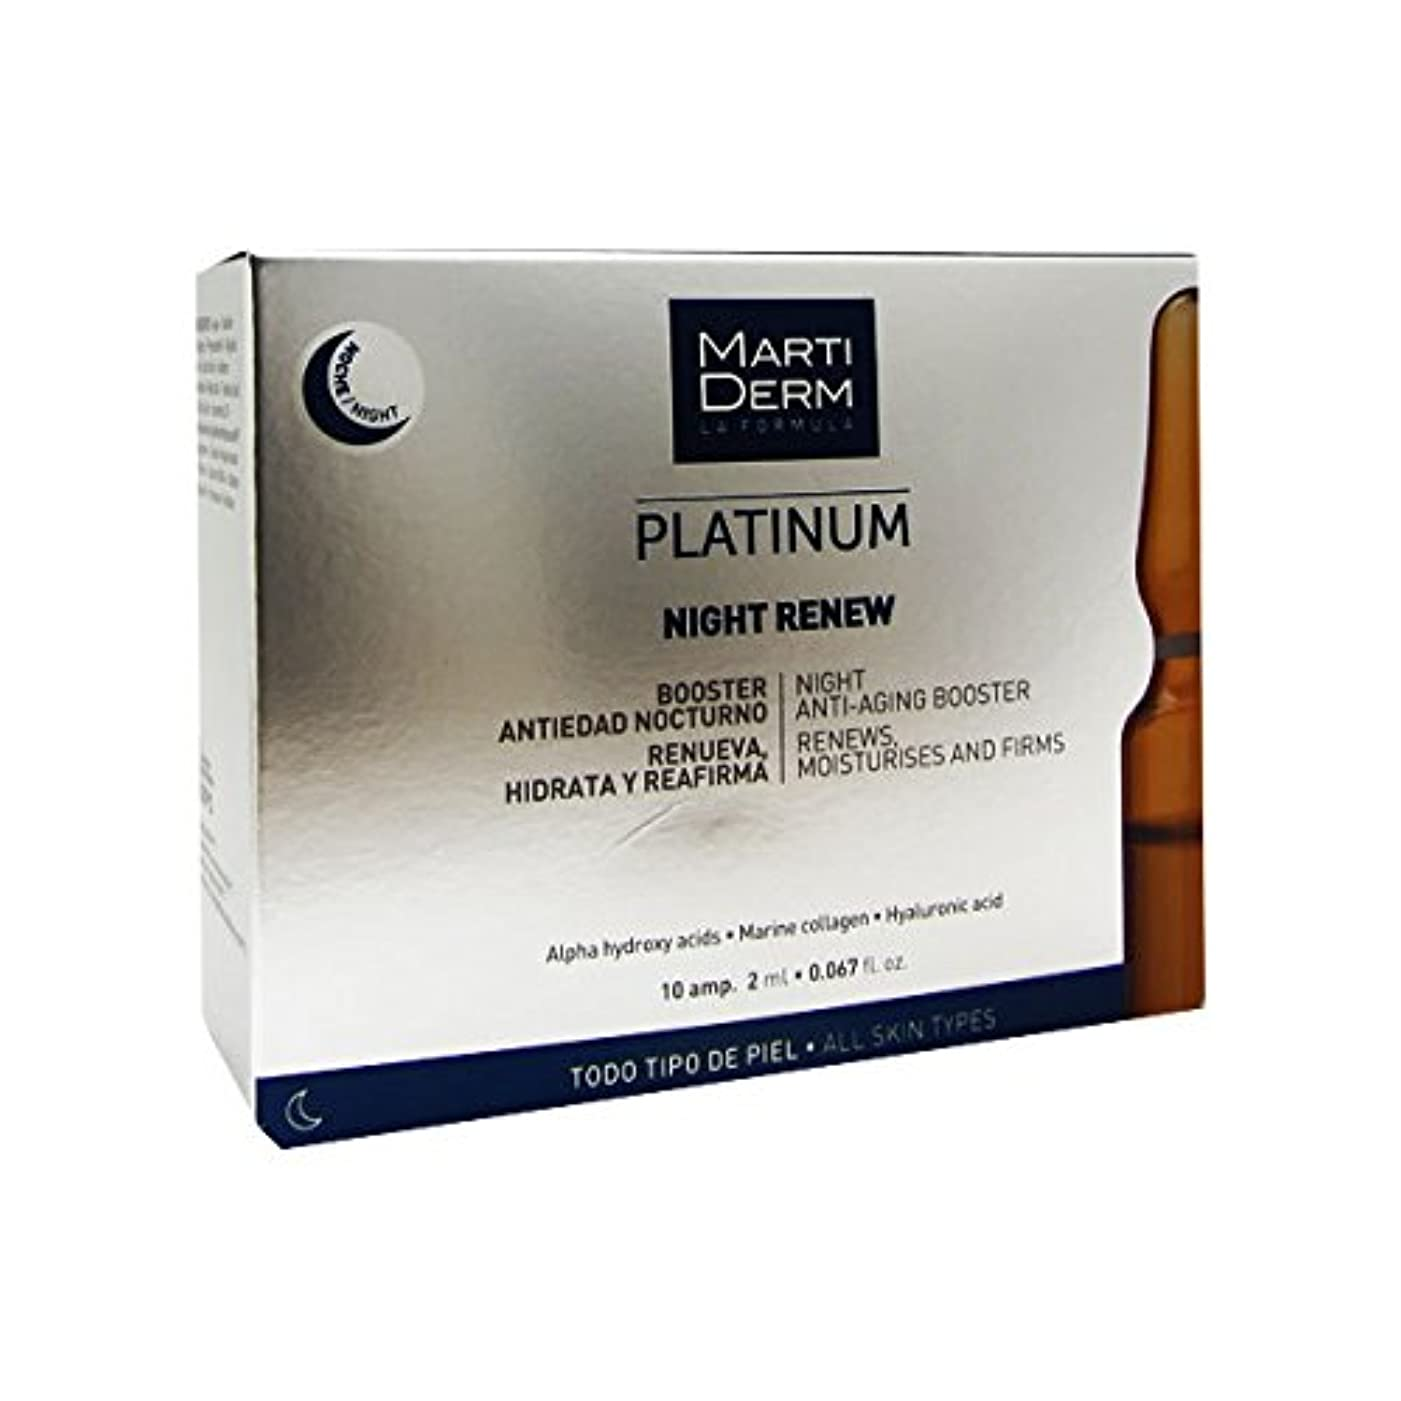 誘発するオープナー先生Martiderm Platinum Night Renew Ampoules 10ampx2ml [並行輸入品]